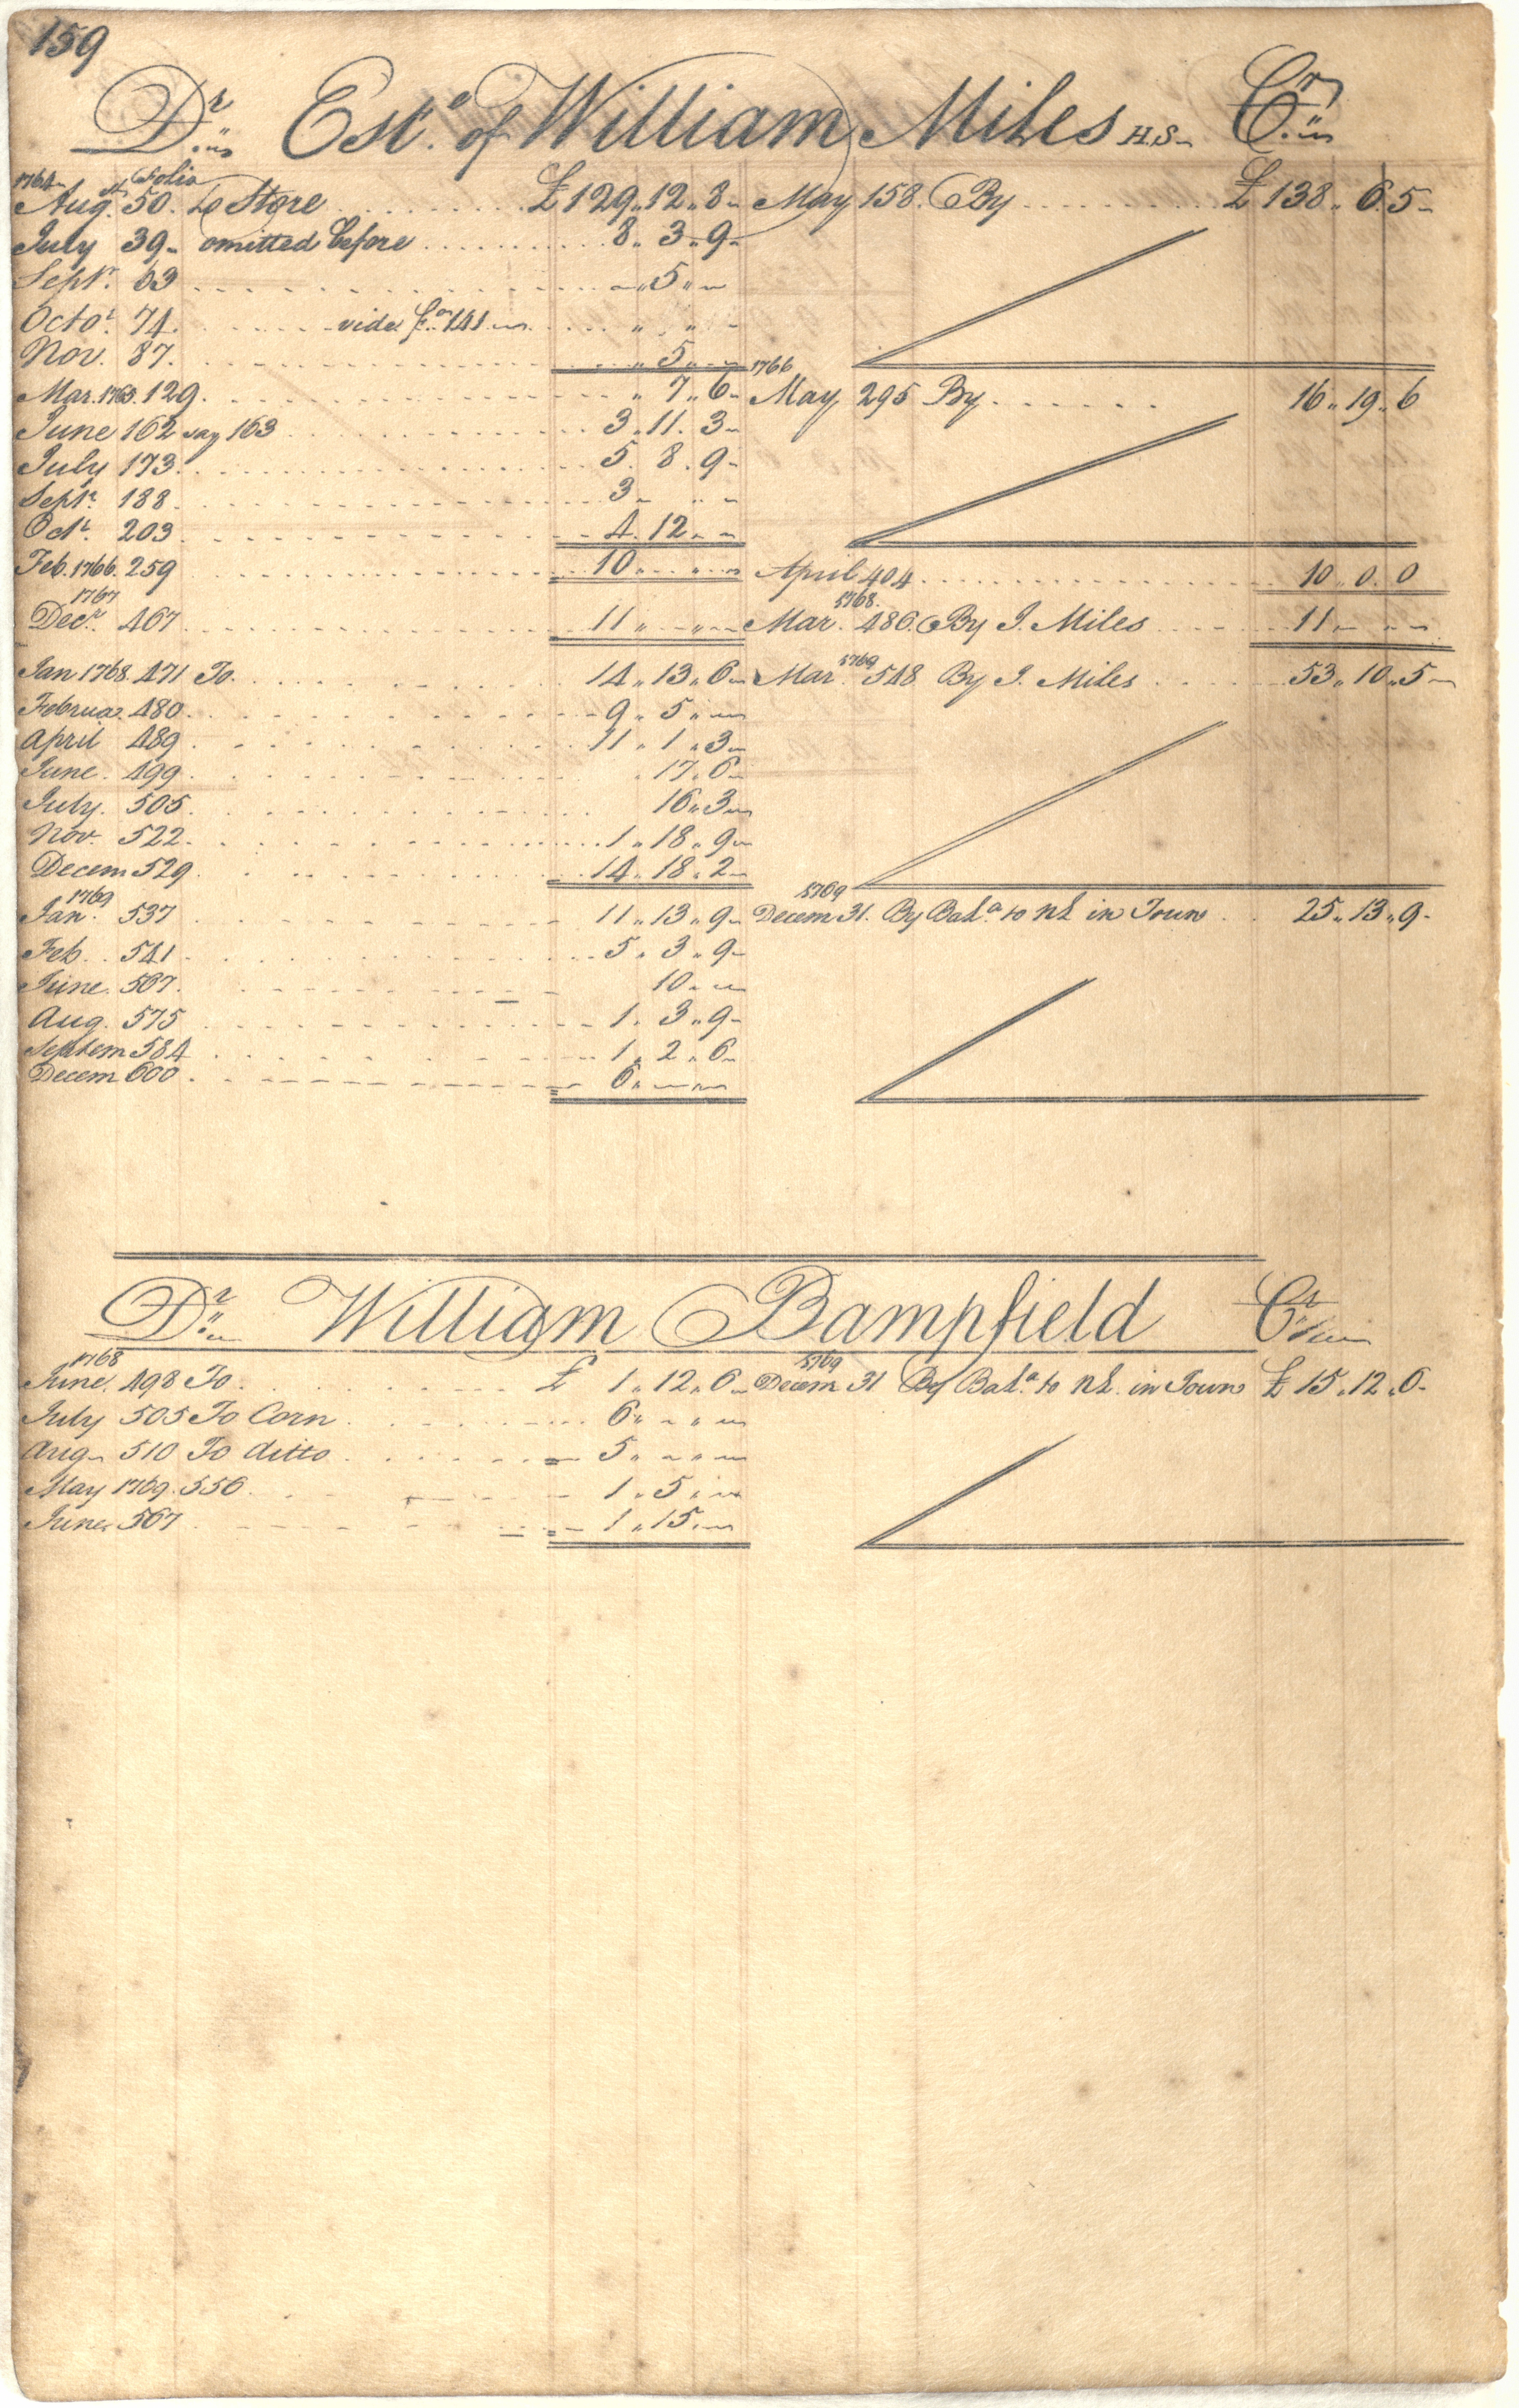 Plowden Weston's Business Ledger, page 159